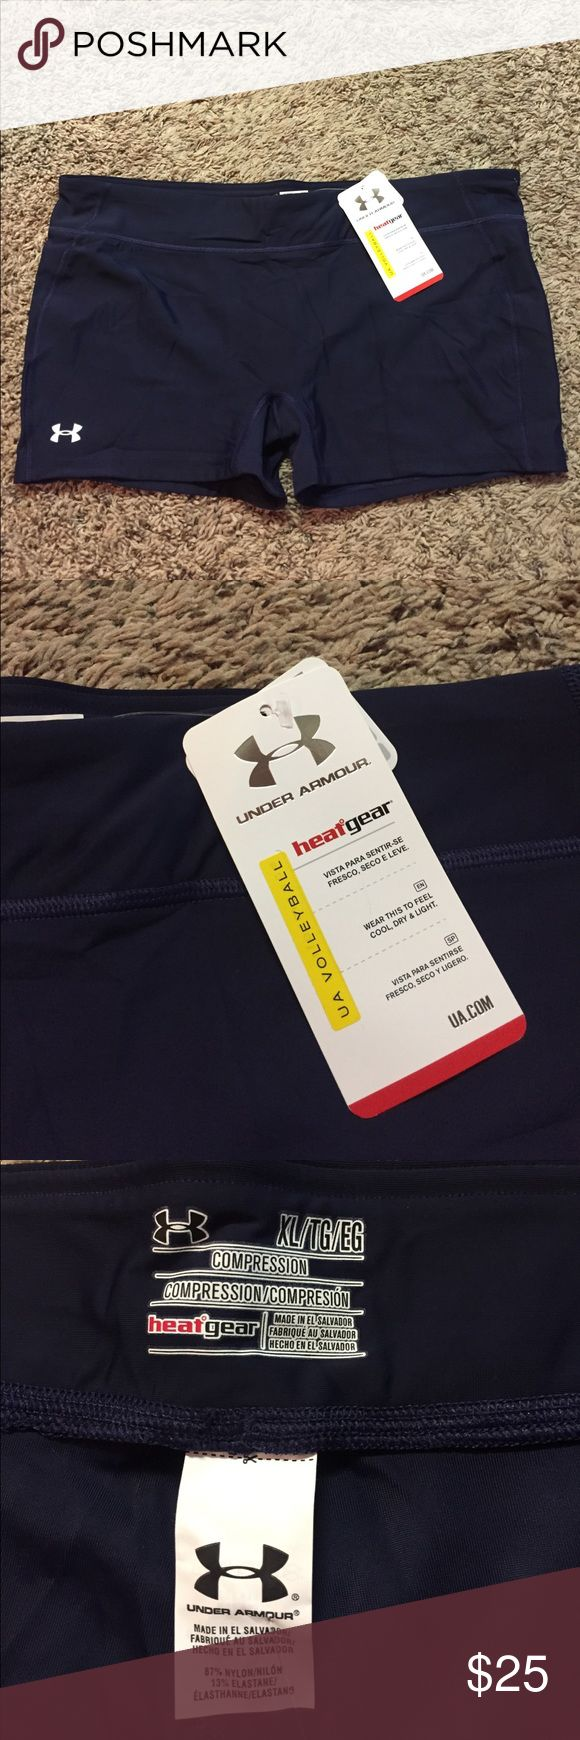 Under Armour Spandex Shorts Navy blue Spandex shorts. Brand new with tags. Compression fit. White logo. Under Armour Shorts